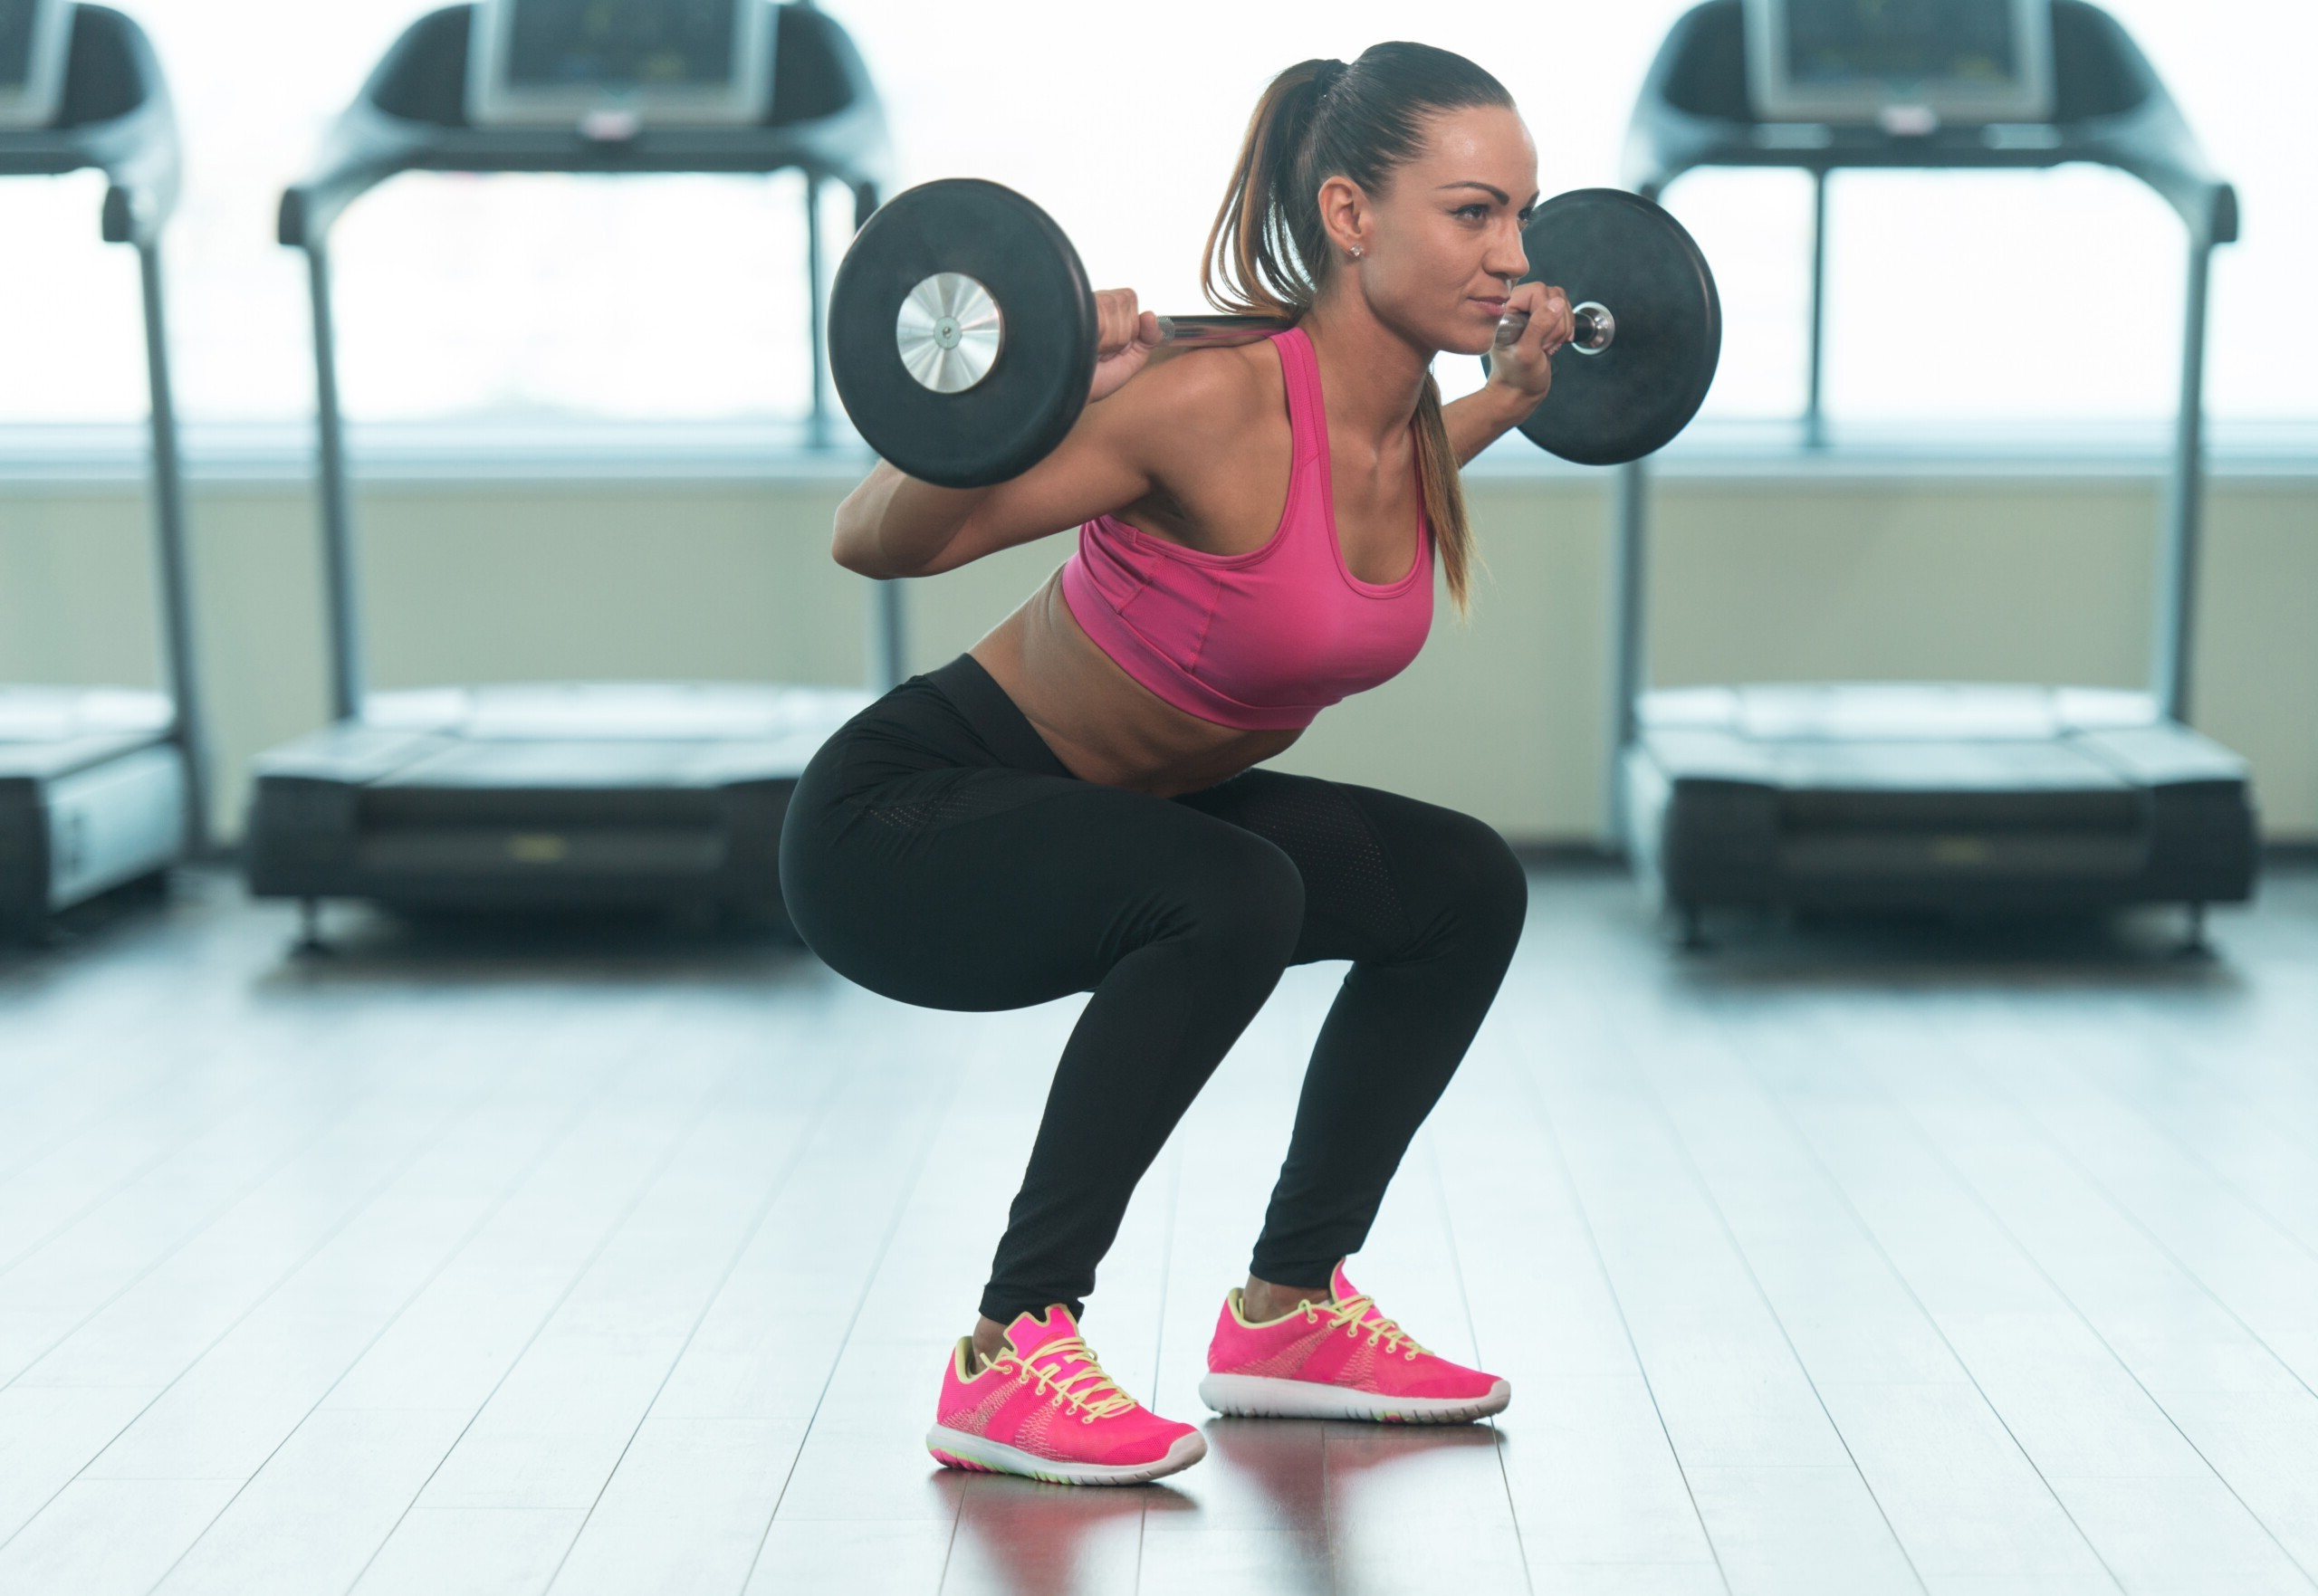 Afraid To Squat with Barbell? Tips to Overcome Fear